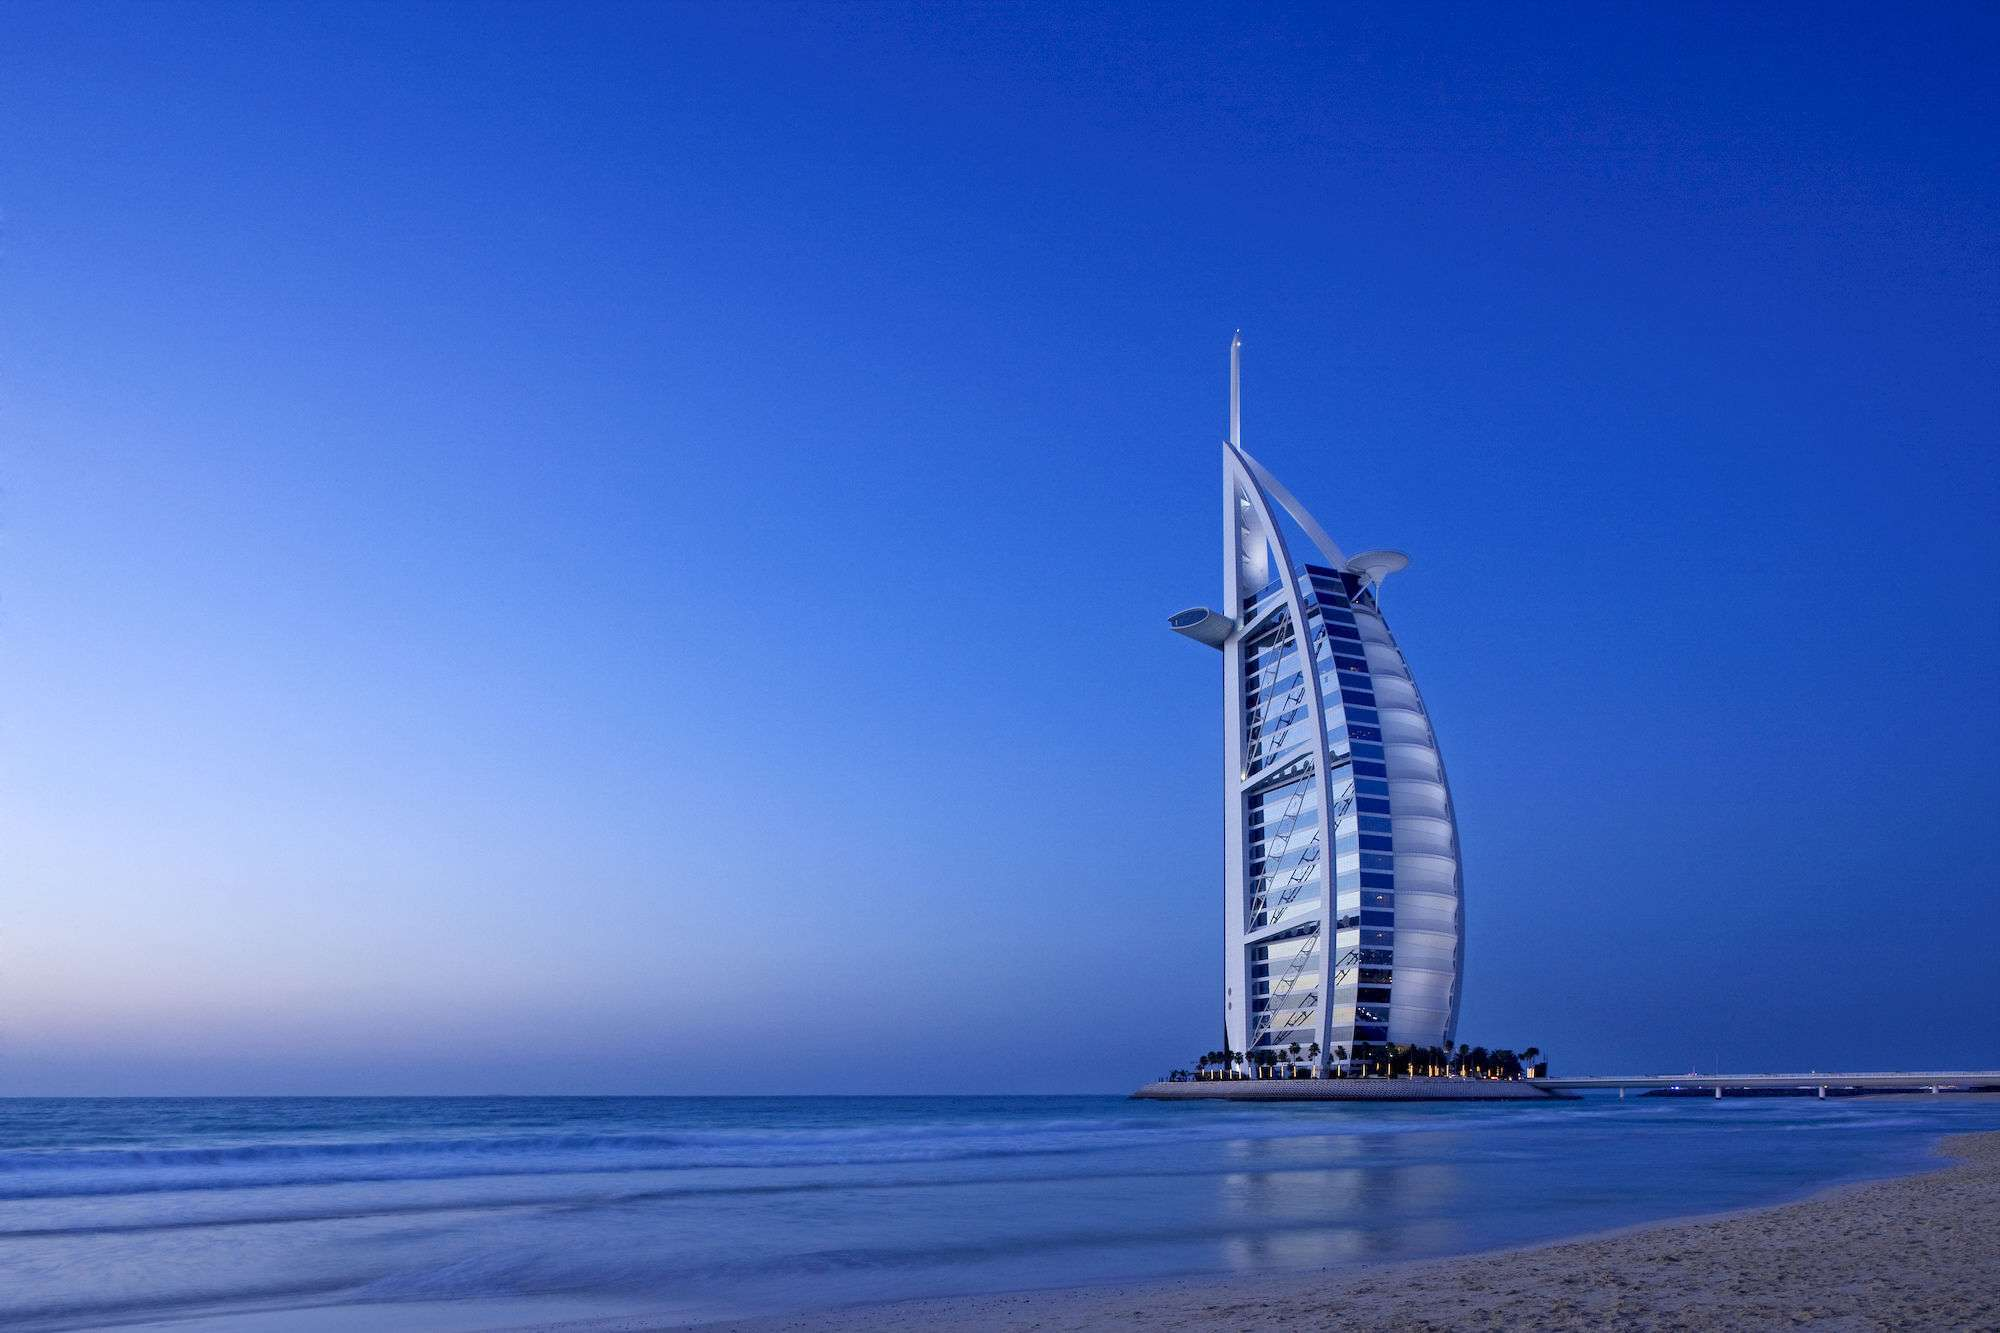 Burj al arab wallpapers images photos pictures backgrounds for Burj al arab